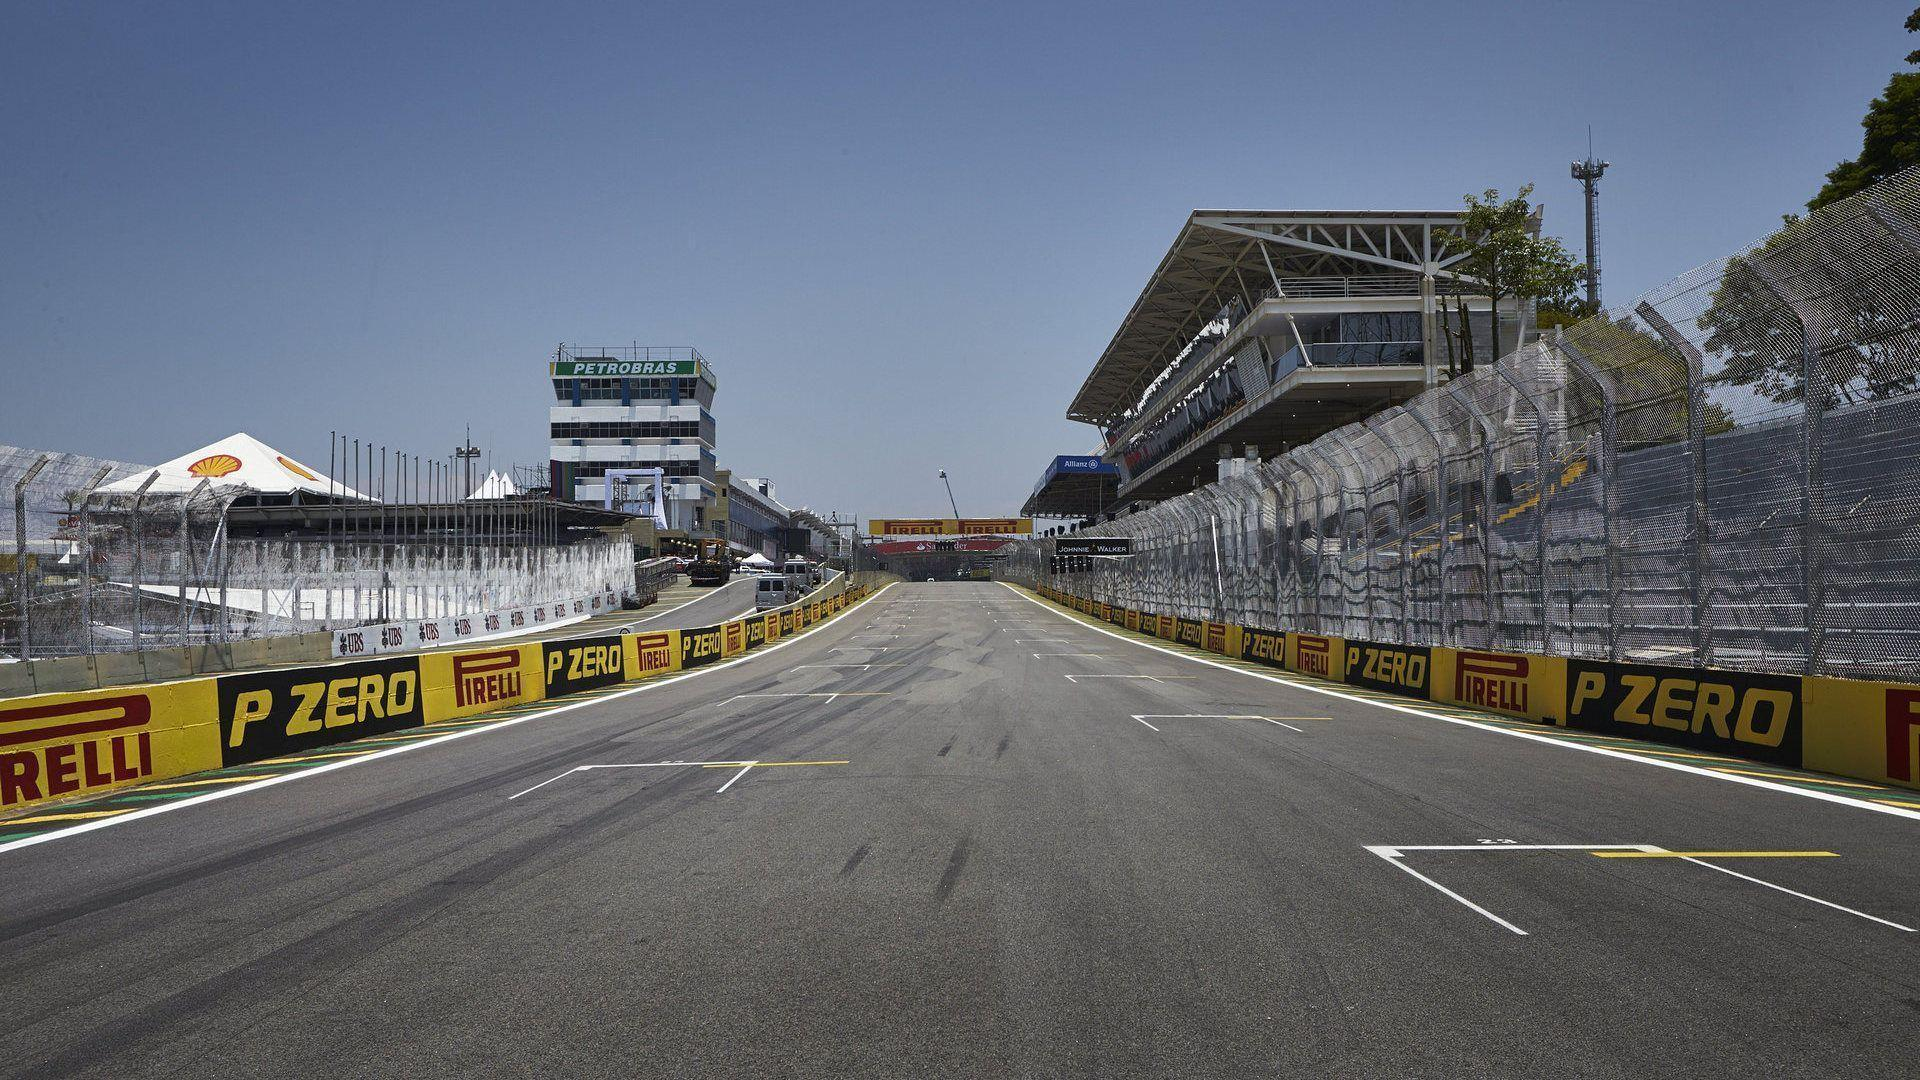 Image result for f1 circuit wallpaper